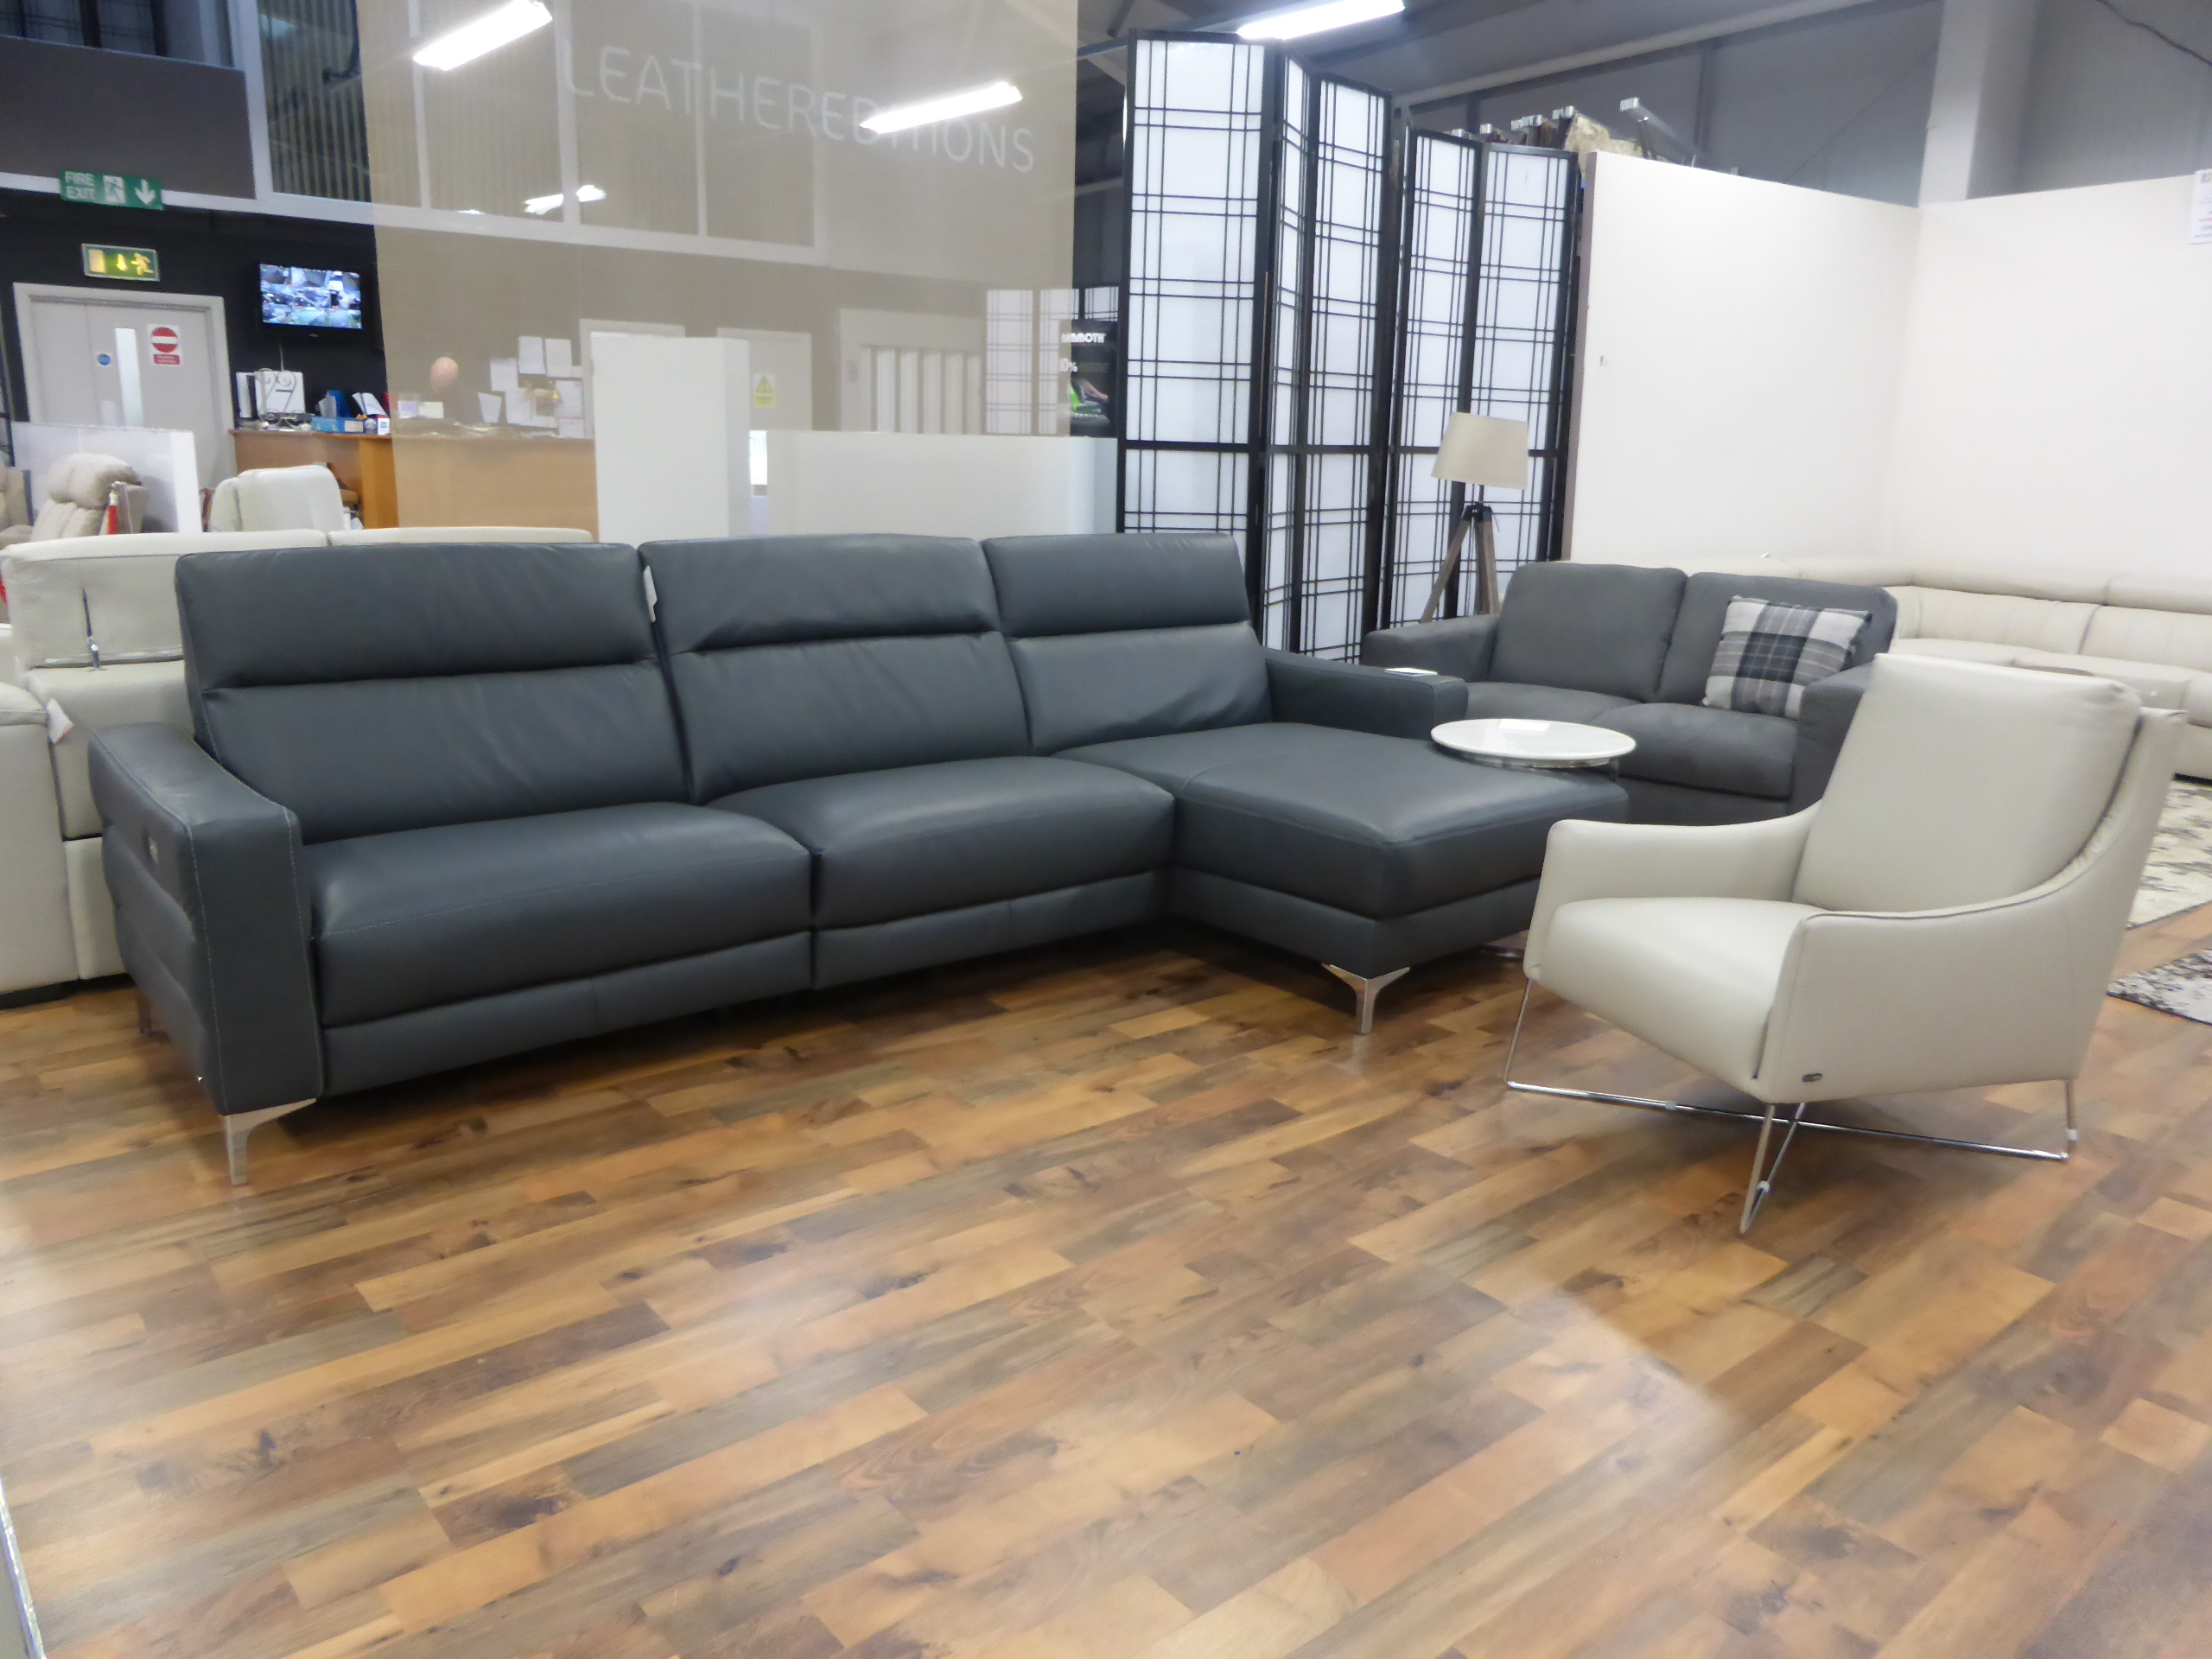 sofa beds denver co you love chairs natuzzi editions pelle high grade leather power recliner ...